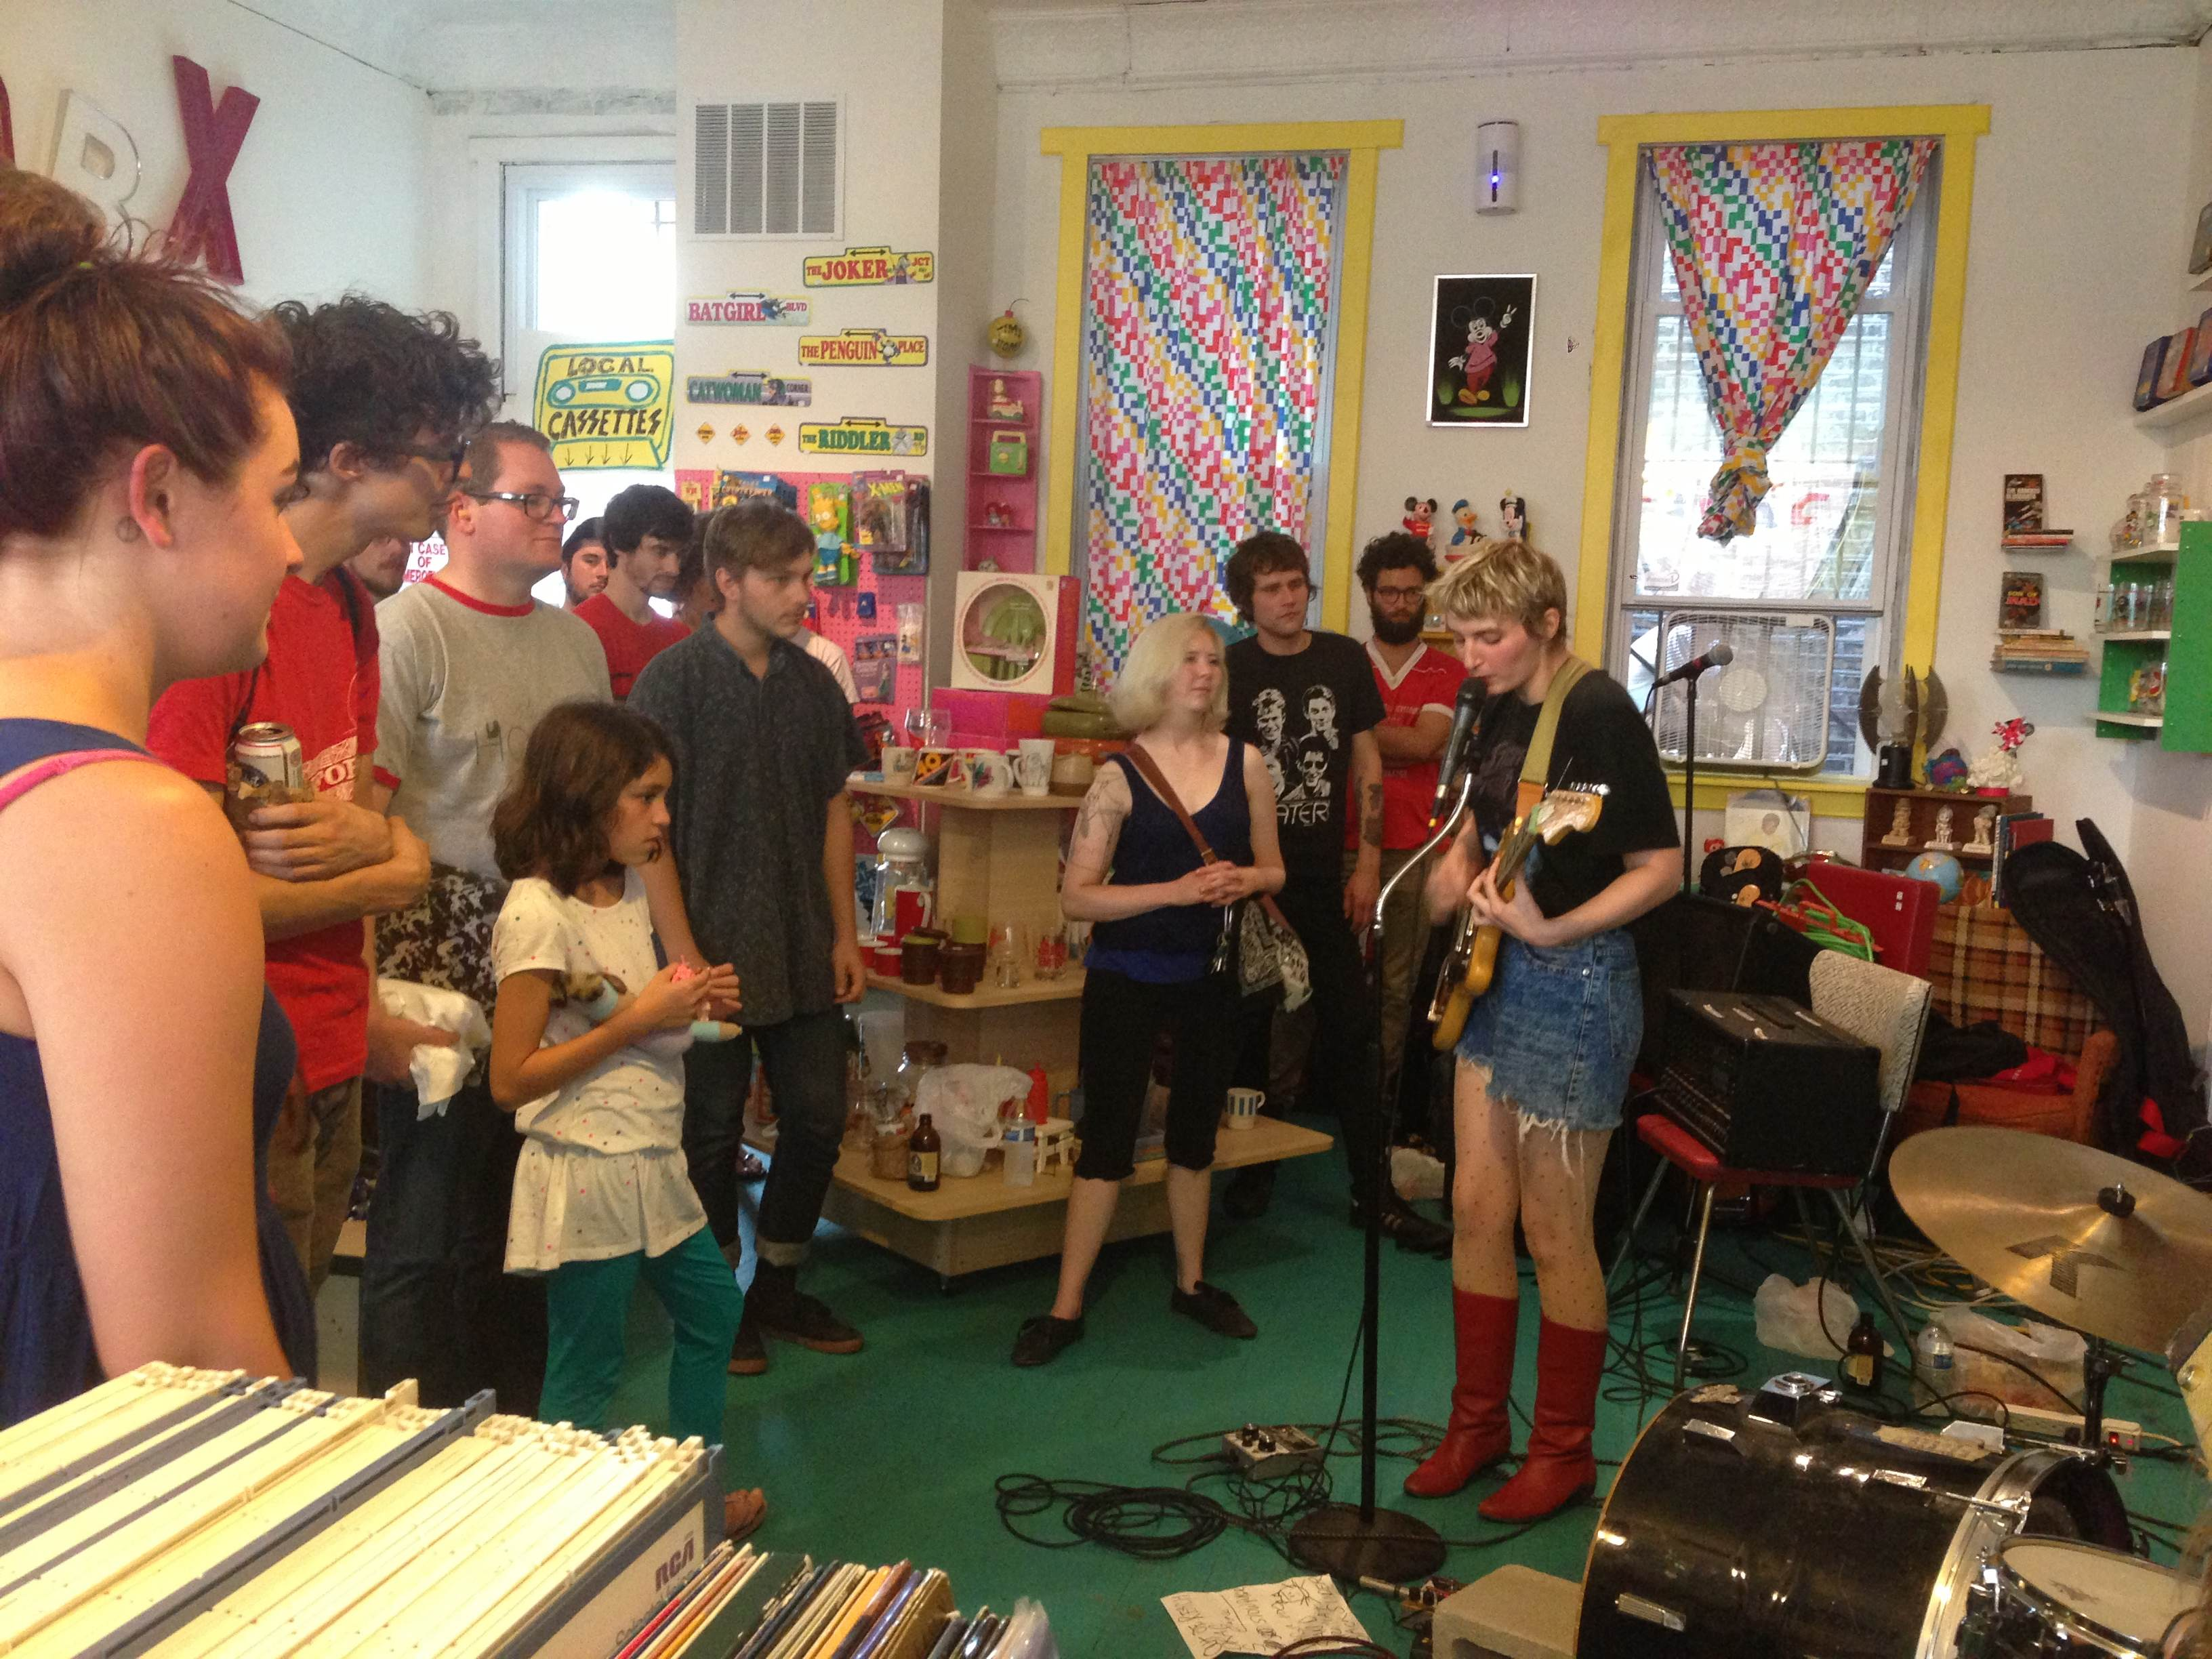 Jesse Rose Crane of The Funs plays on Cassette Store Day at Bric-A-Brac Records. (Photo courtesy of Kelly Nothing)